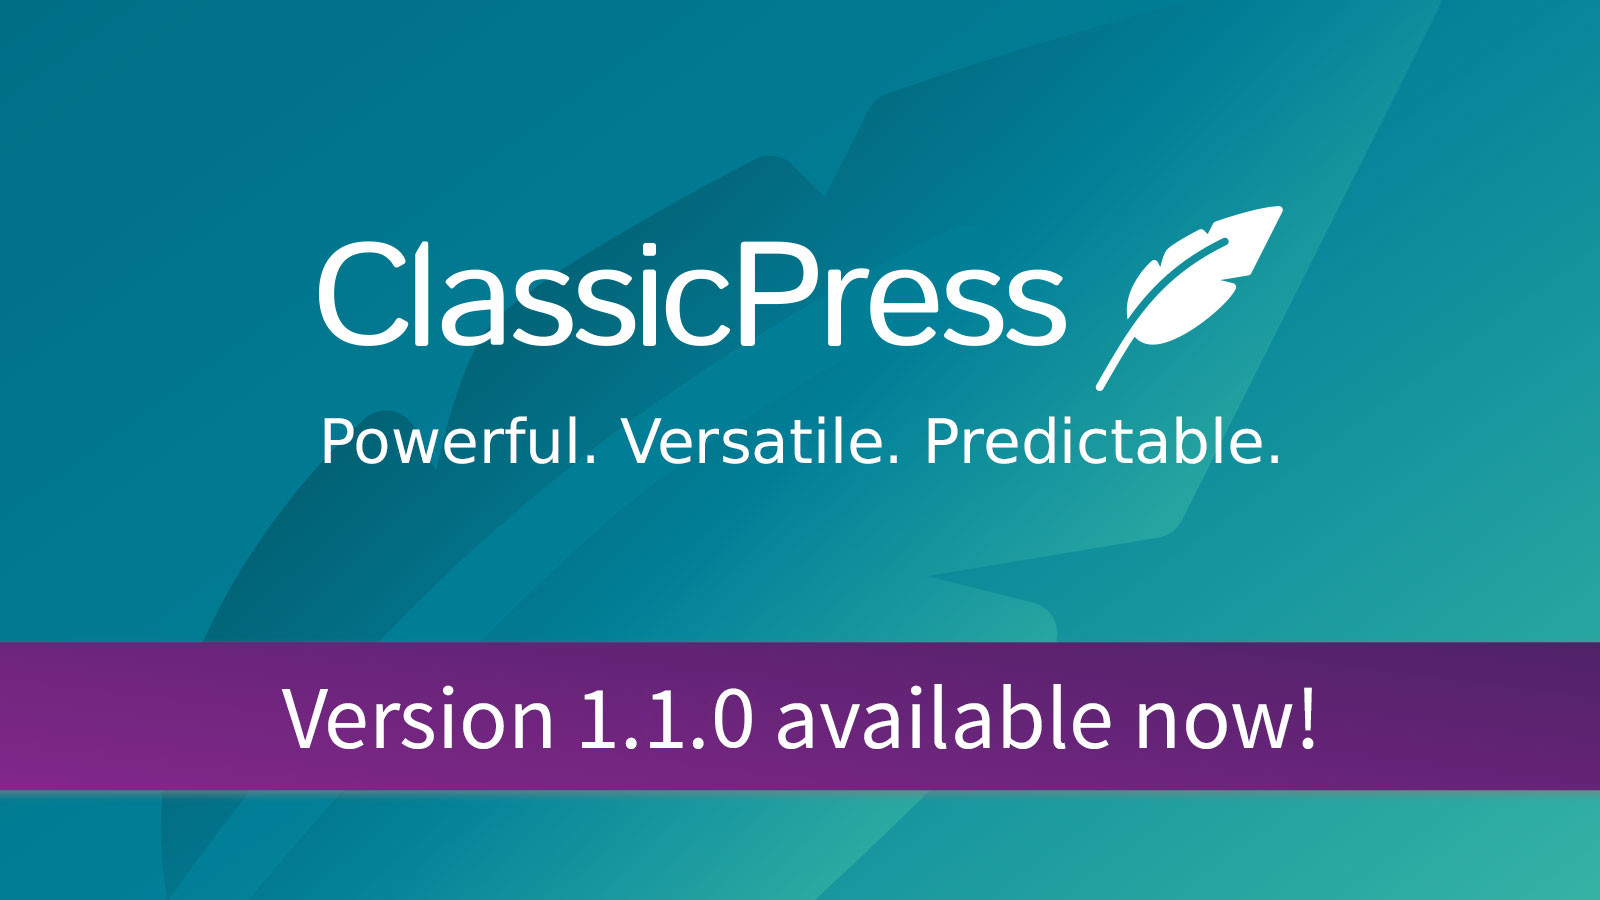 ClassicPress version 1.1.0